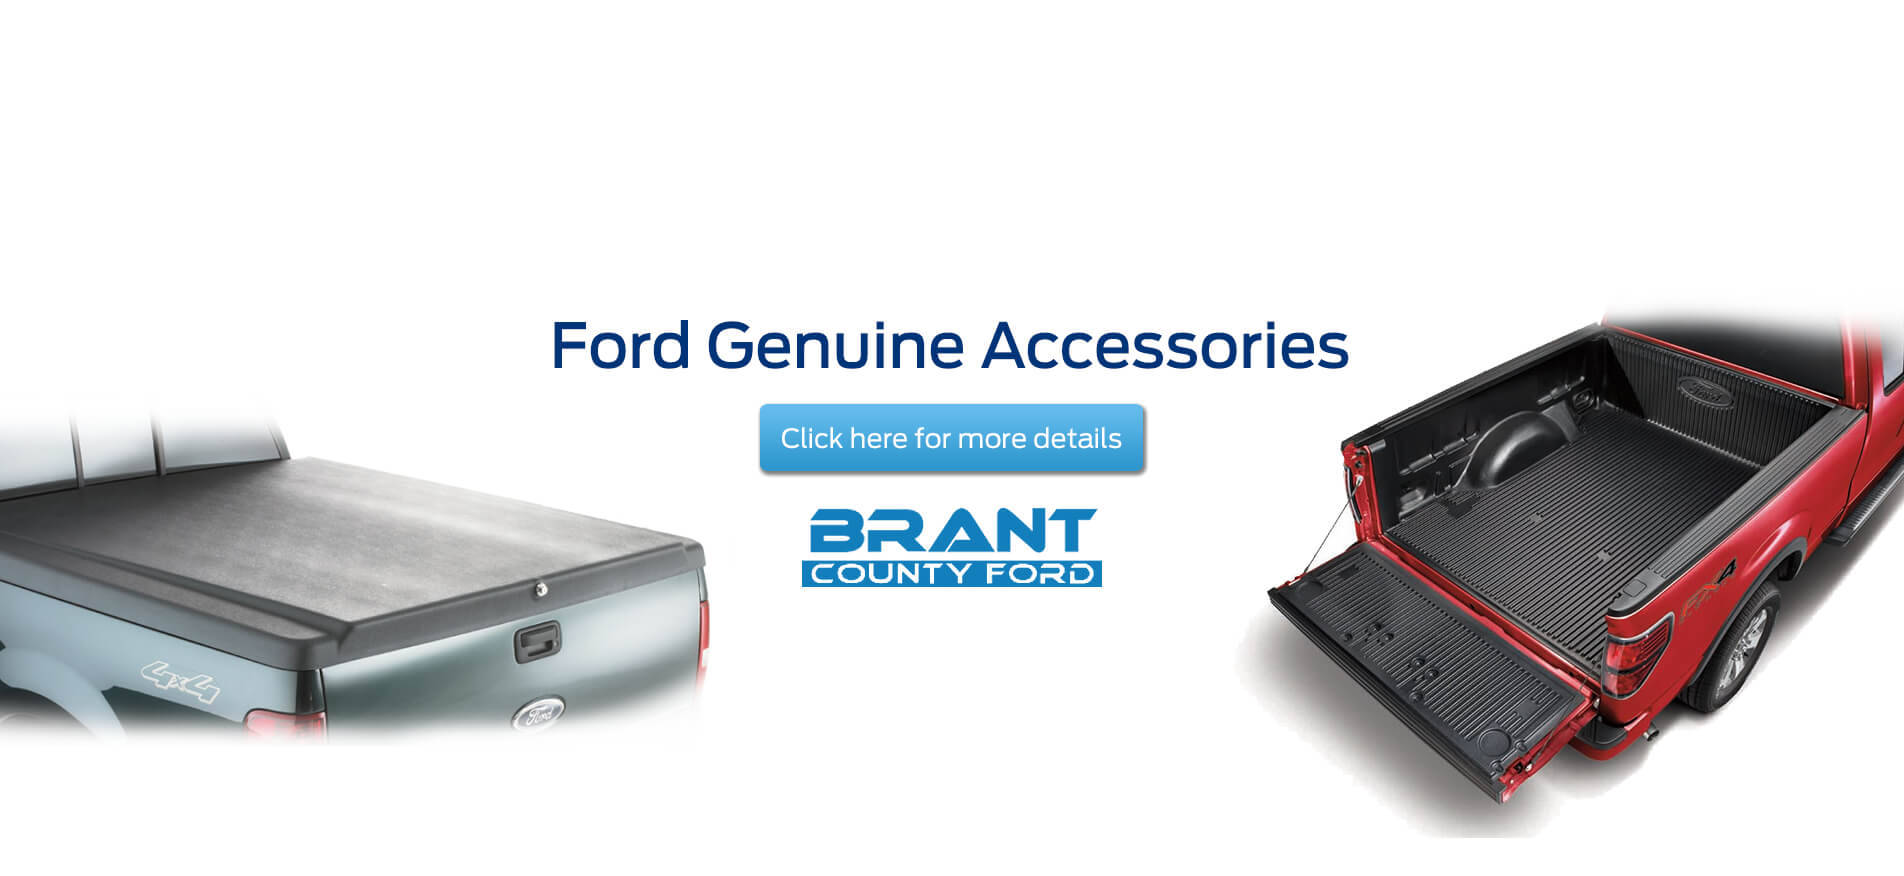 Brant County Ford - Accessories